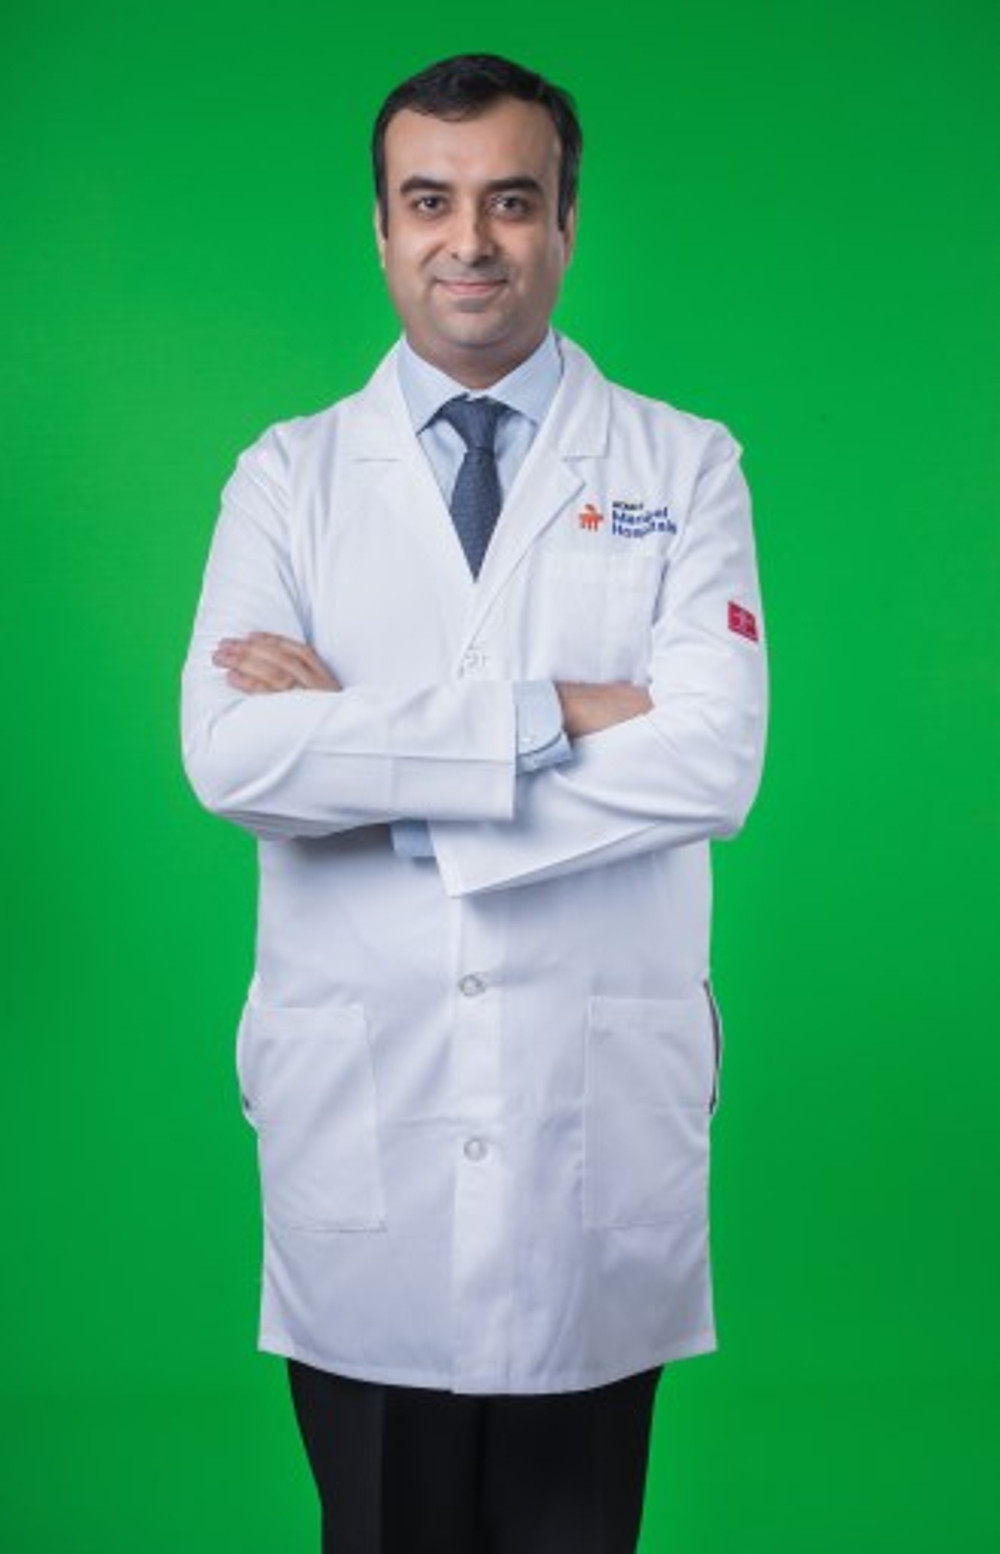 Dr Peush Bajpai Manipal Hospital - Breath And Beats